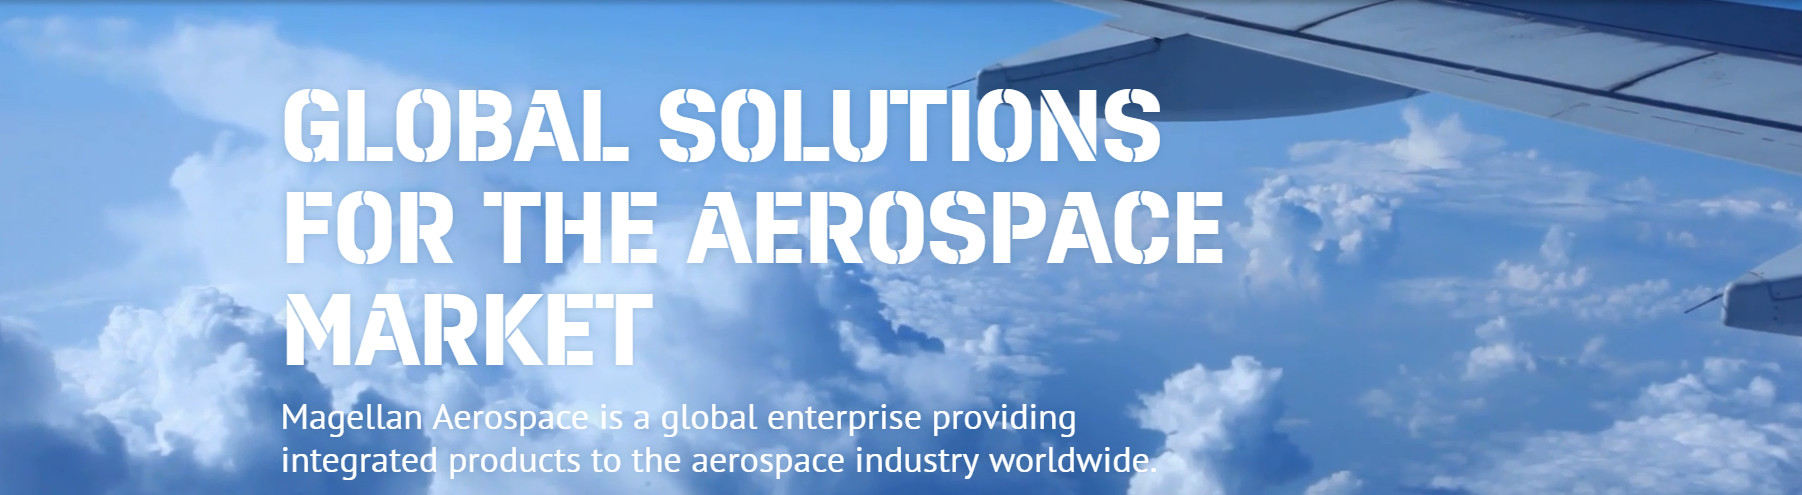 Magellan Aerospace Corporation Banner Image